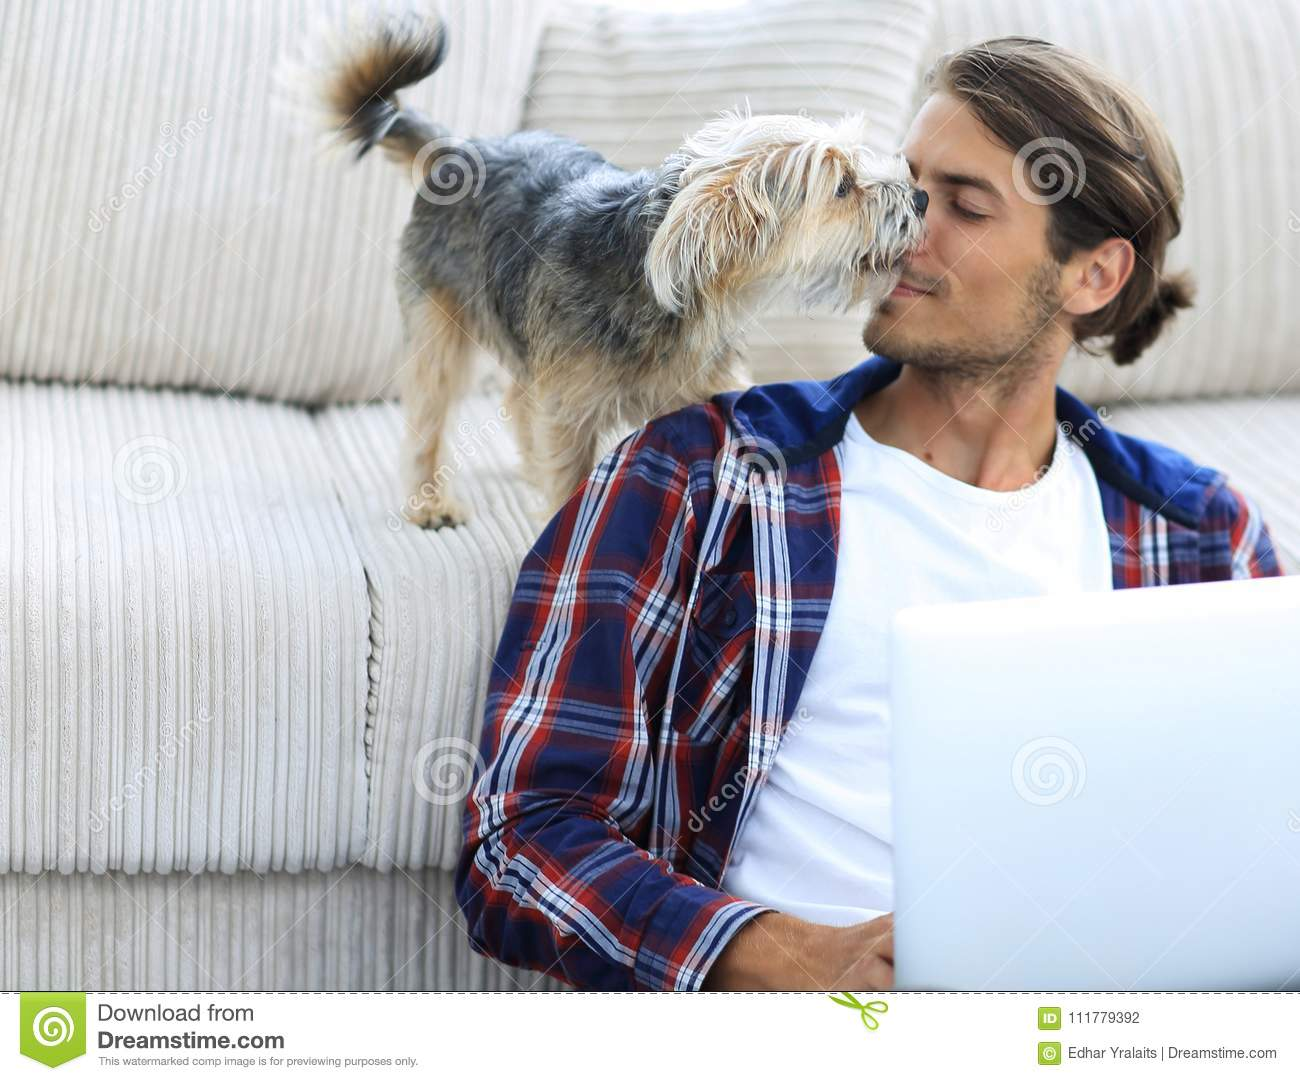 Successful guy and his favorite pet in a cozy living room.